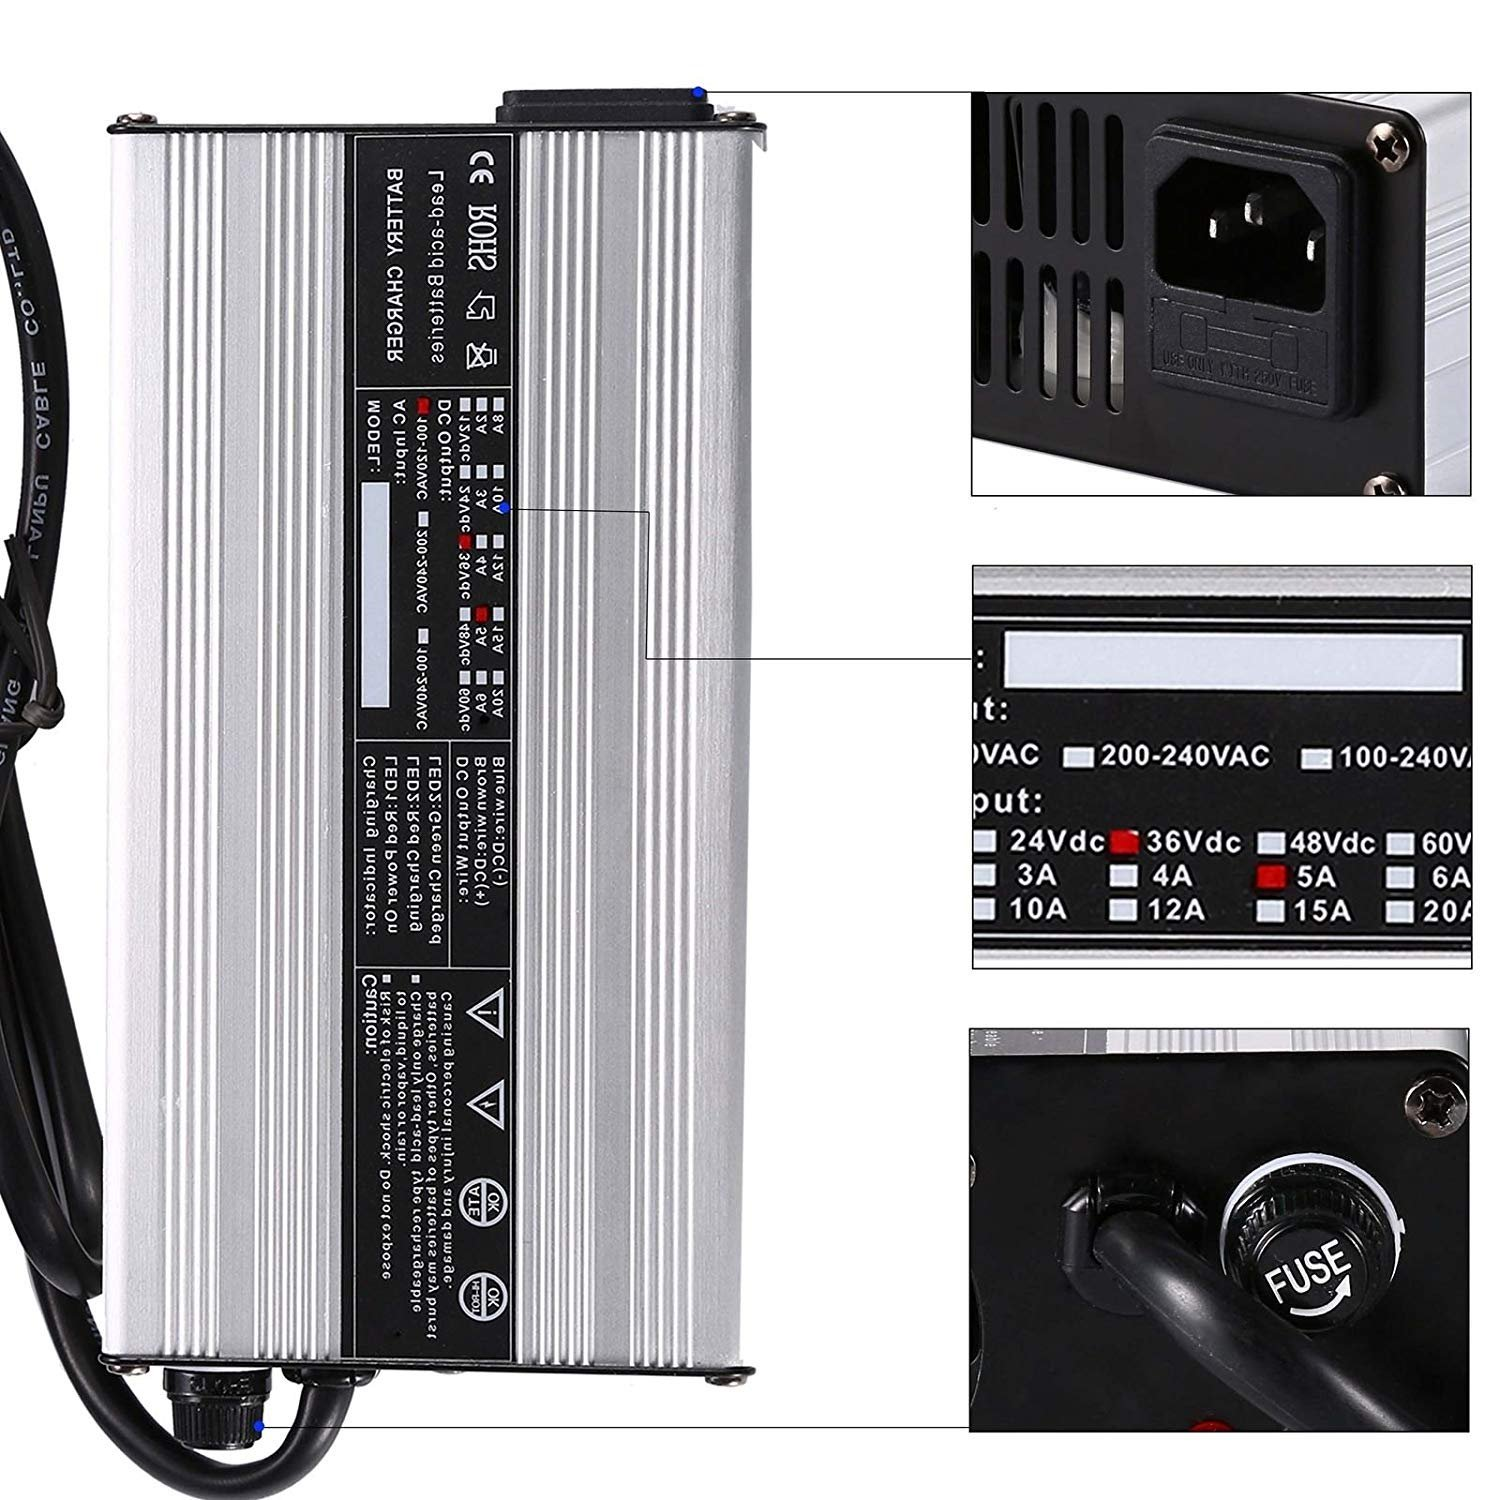 NEW 36V EZ-GO Powerwise 36 Volt TXT Medalist Golf Cart Battery Charger''D'' Style by JEM&JULES (Image #2)